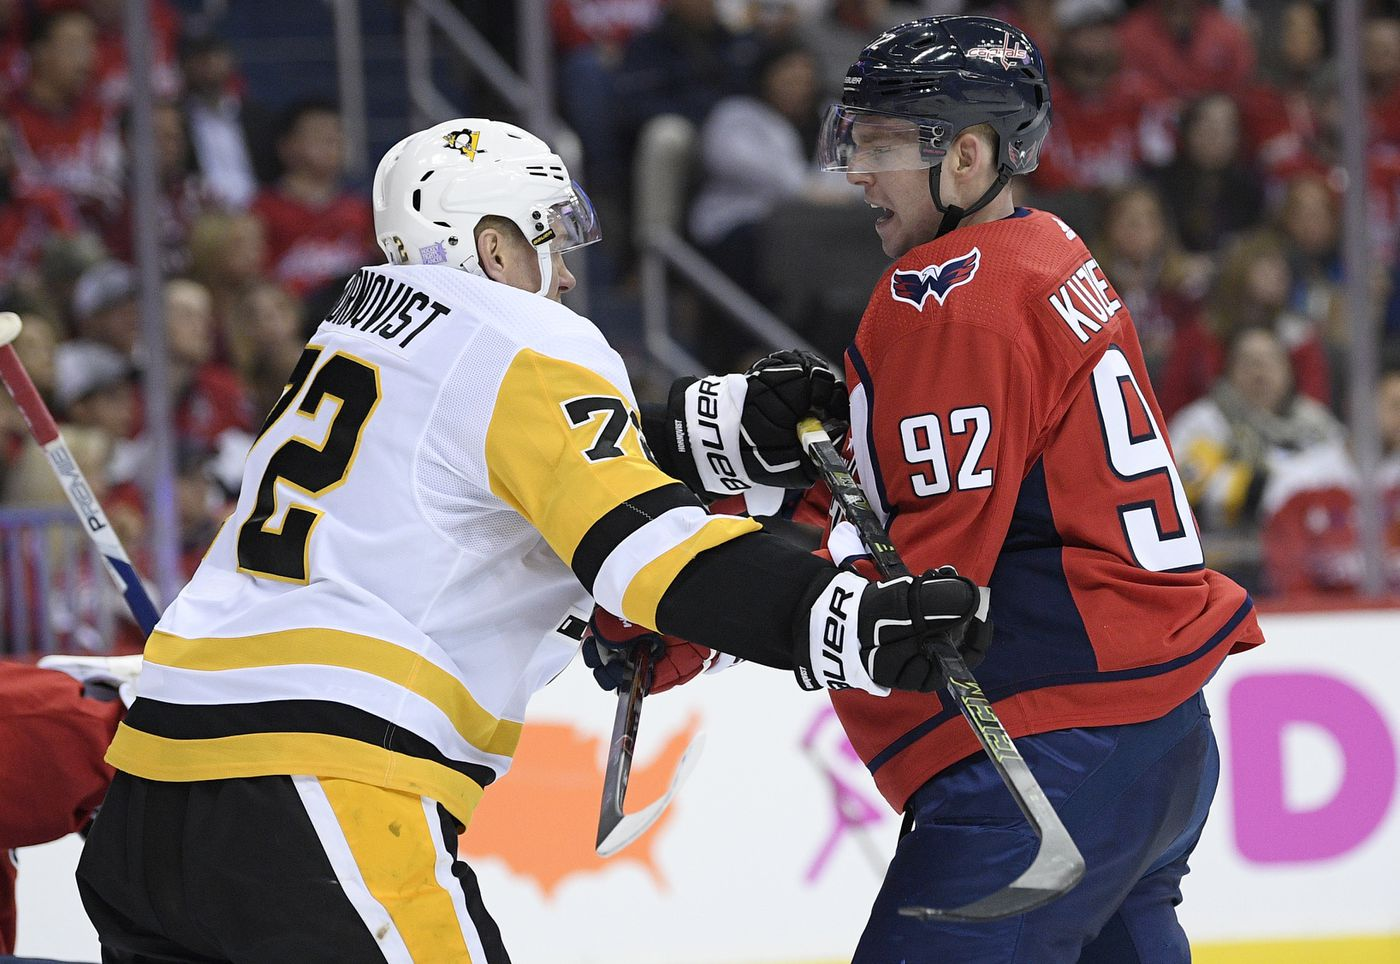 7054870388f No hearing for Malkin for hit to head in Pens  loss at Caps